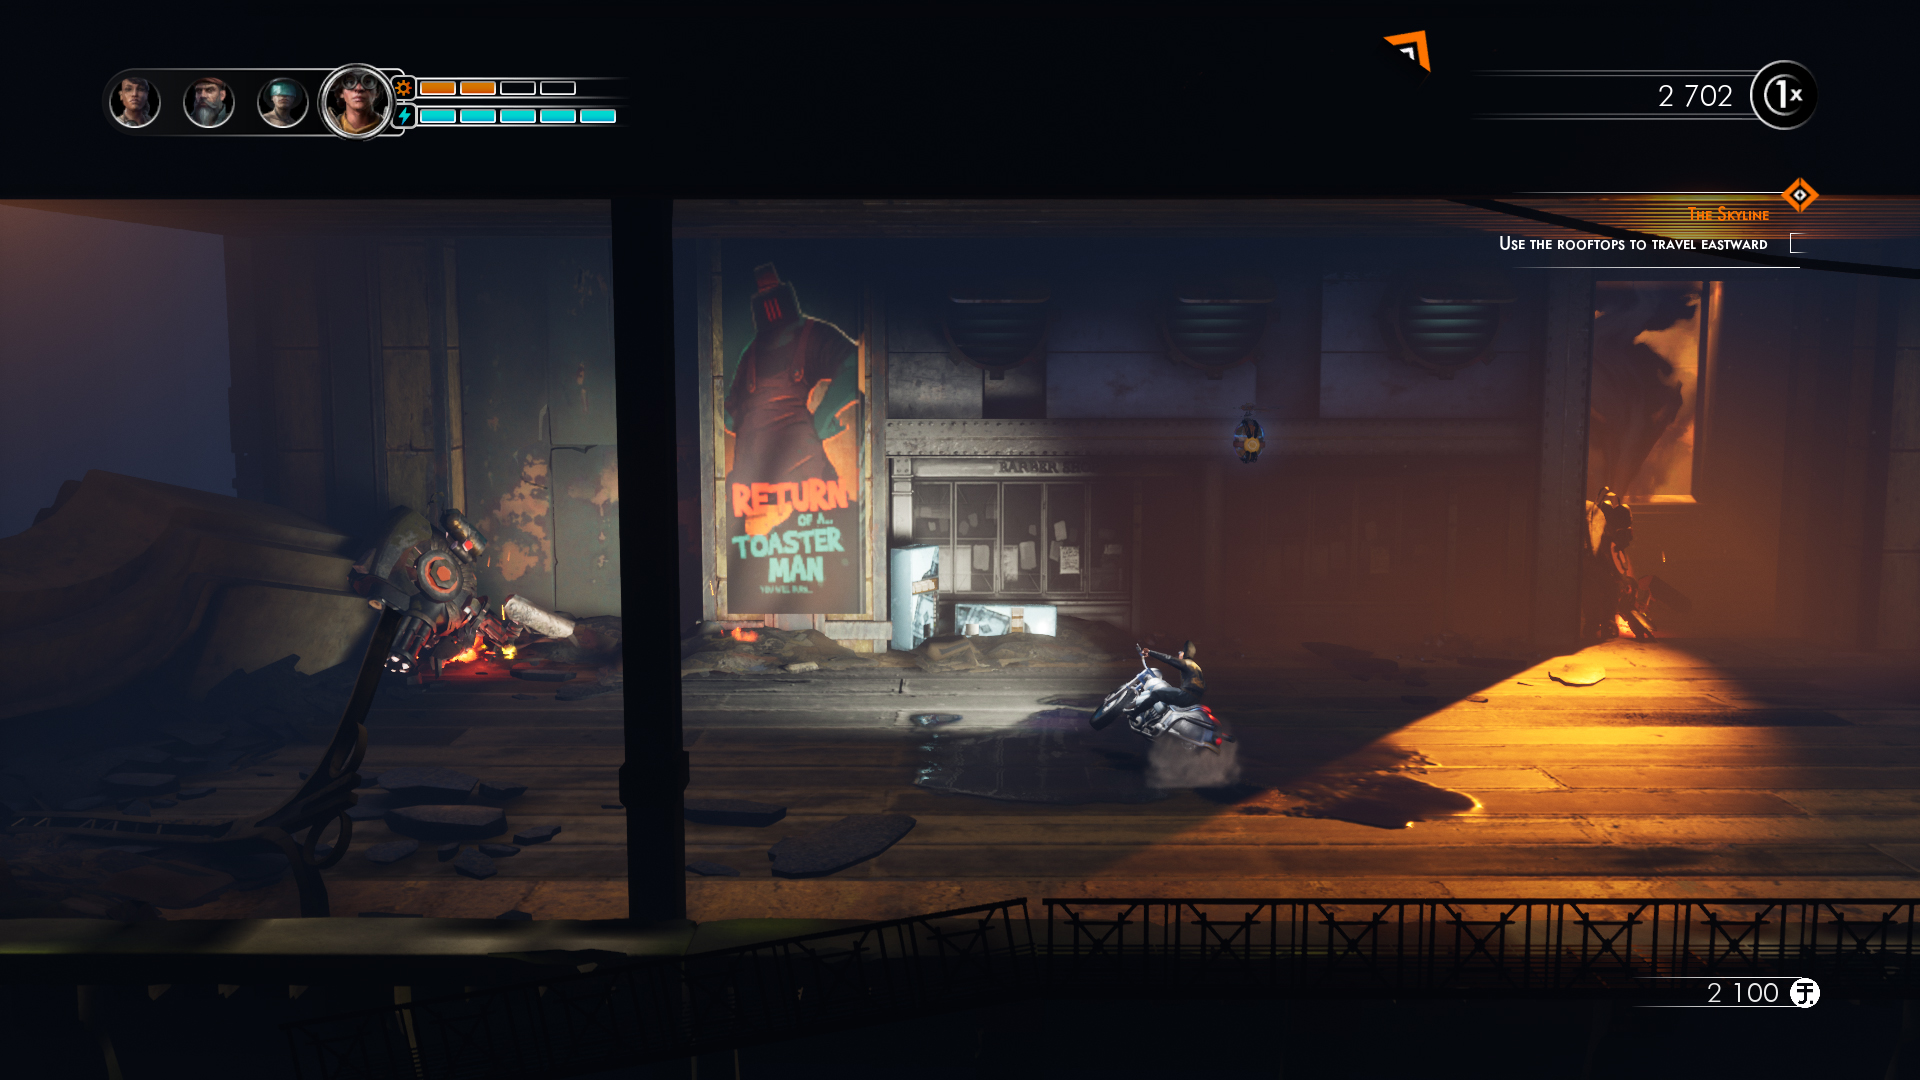 Steel Rats screenshot 1.